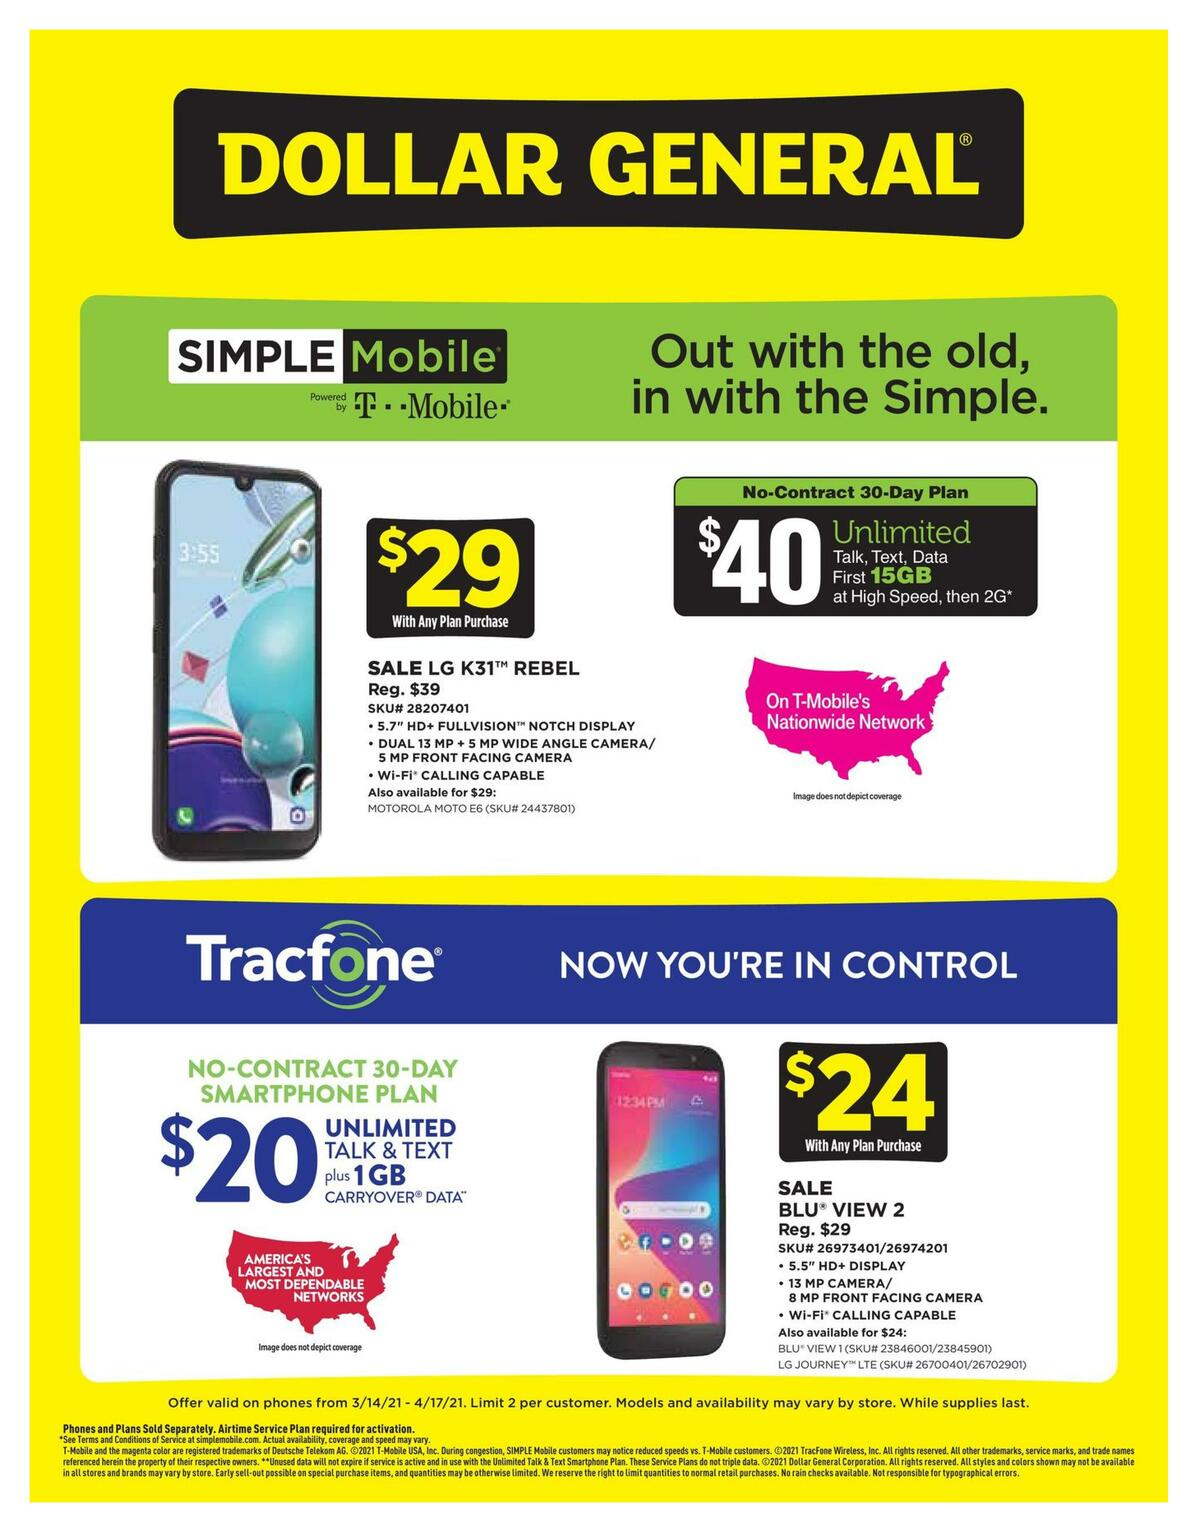 Dollar General Weekly Wireless Specials Weekly Ad from March 14